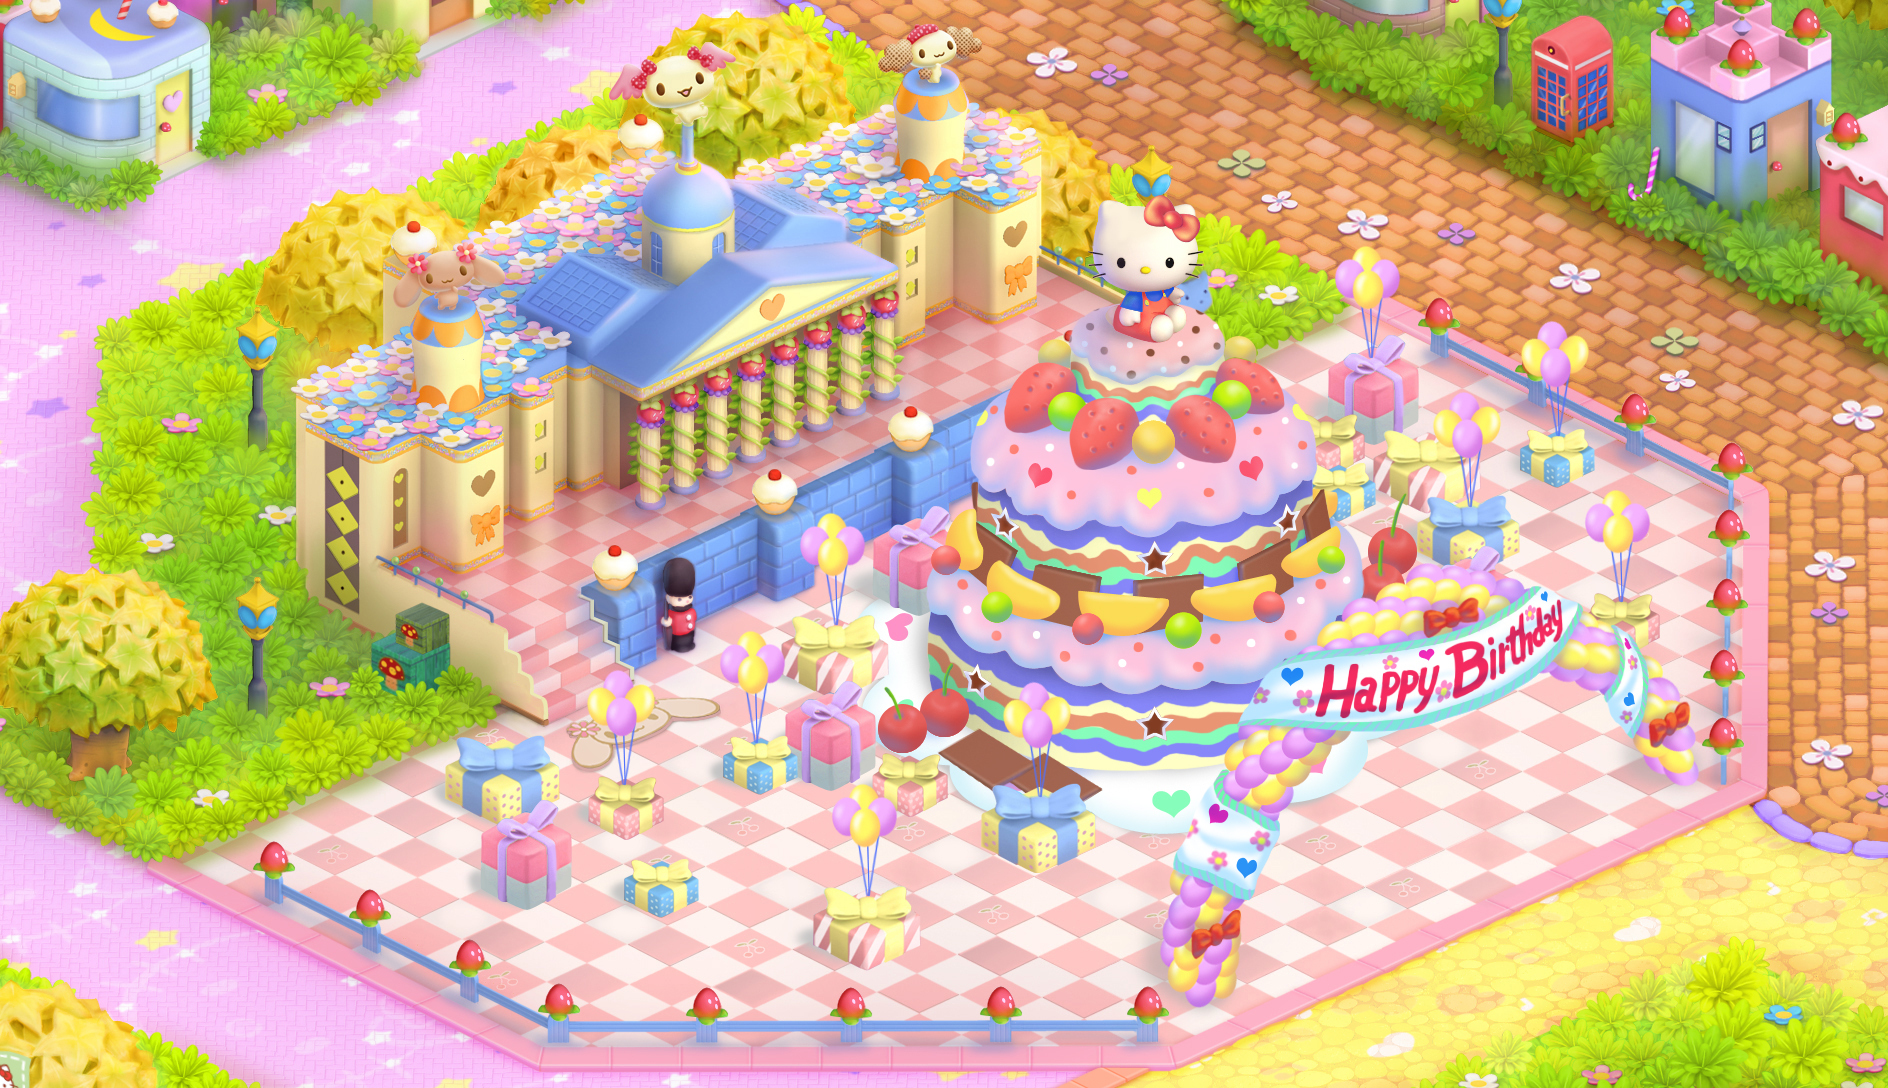 Uncategorized Hello Kitty Online hello kitty online images london birthday decorations hd wallpaper and background photos